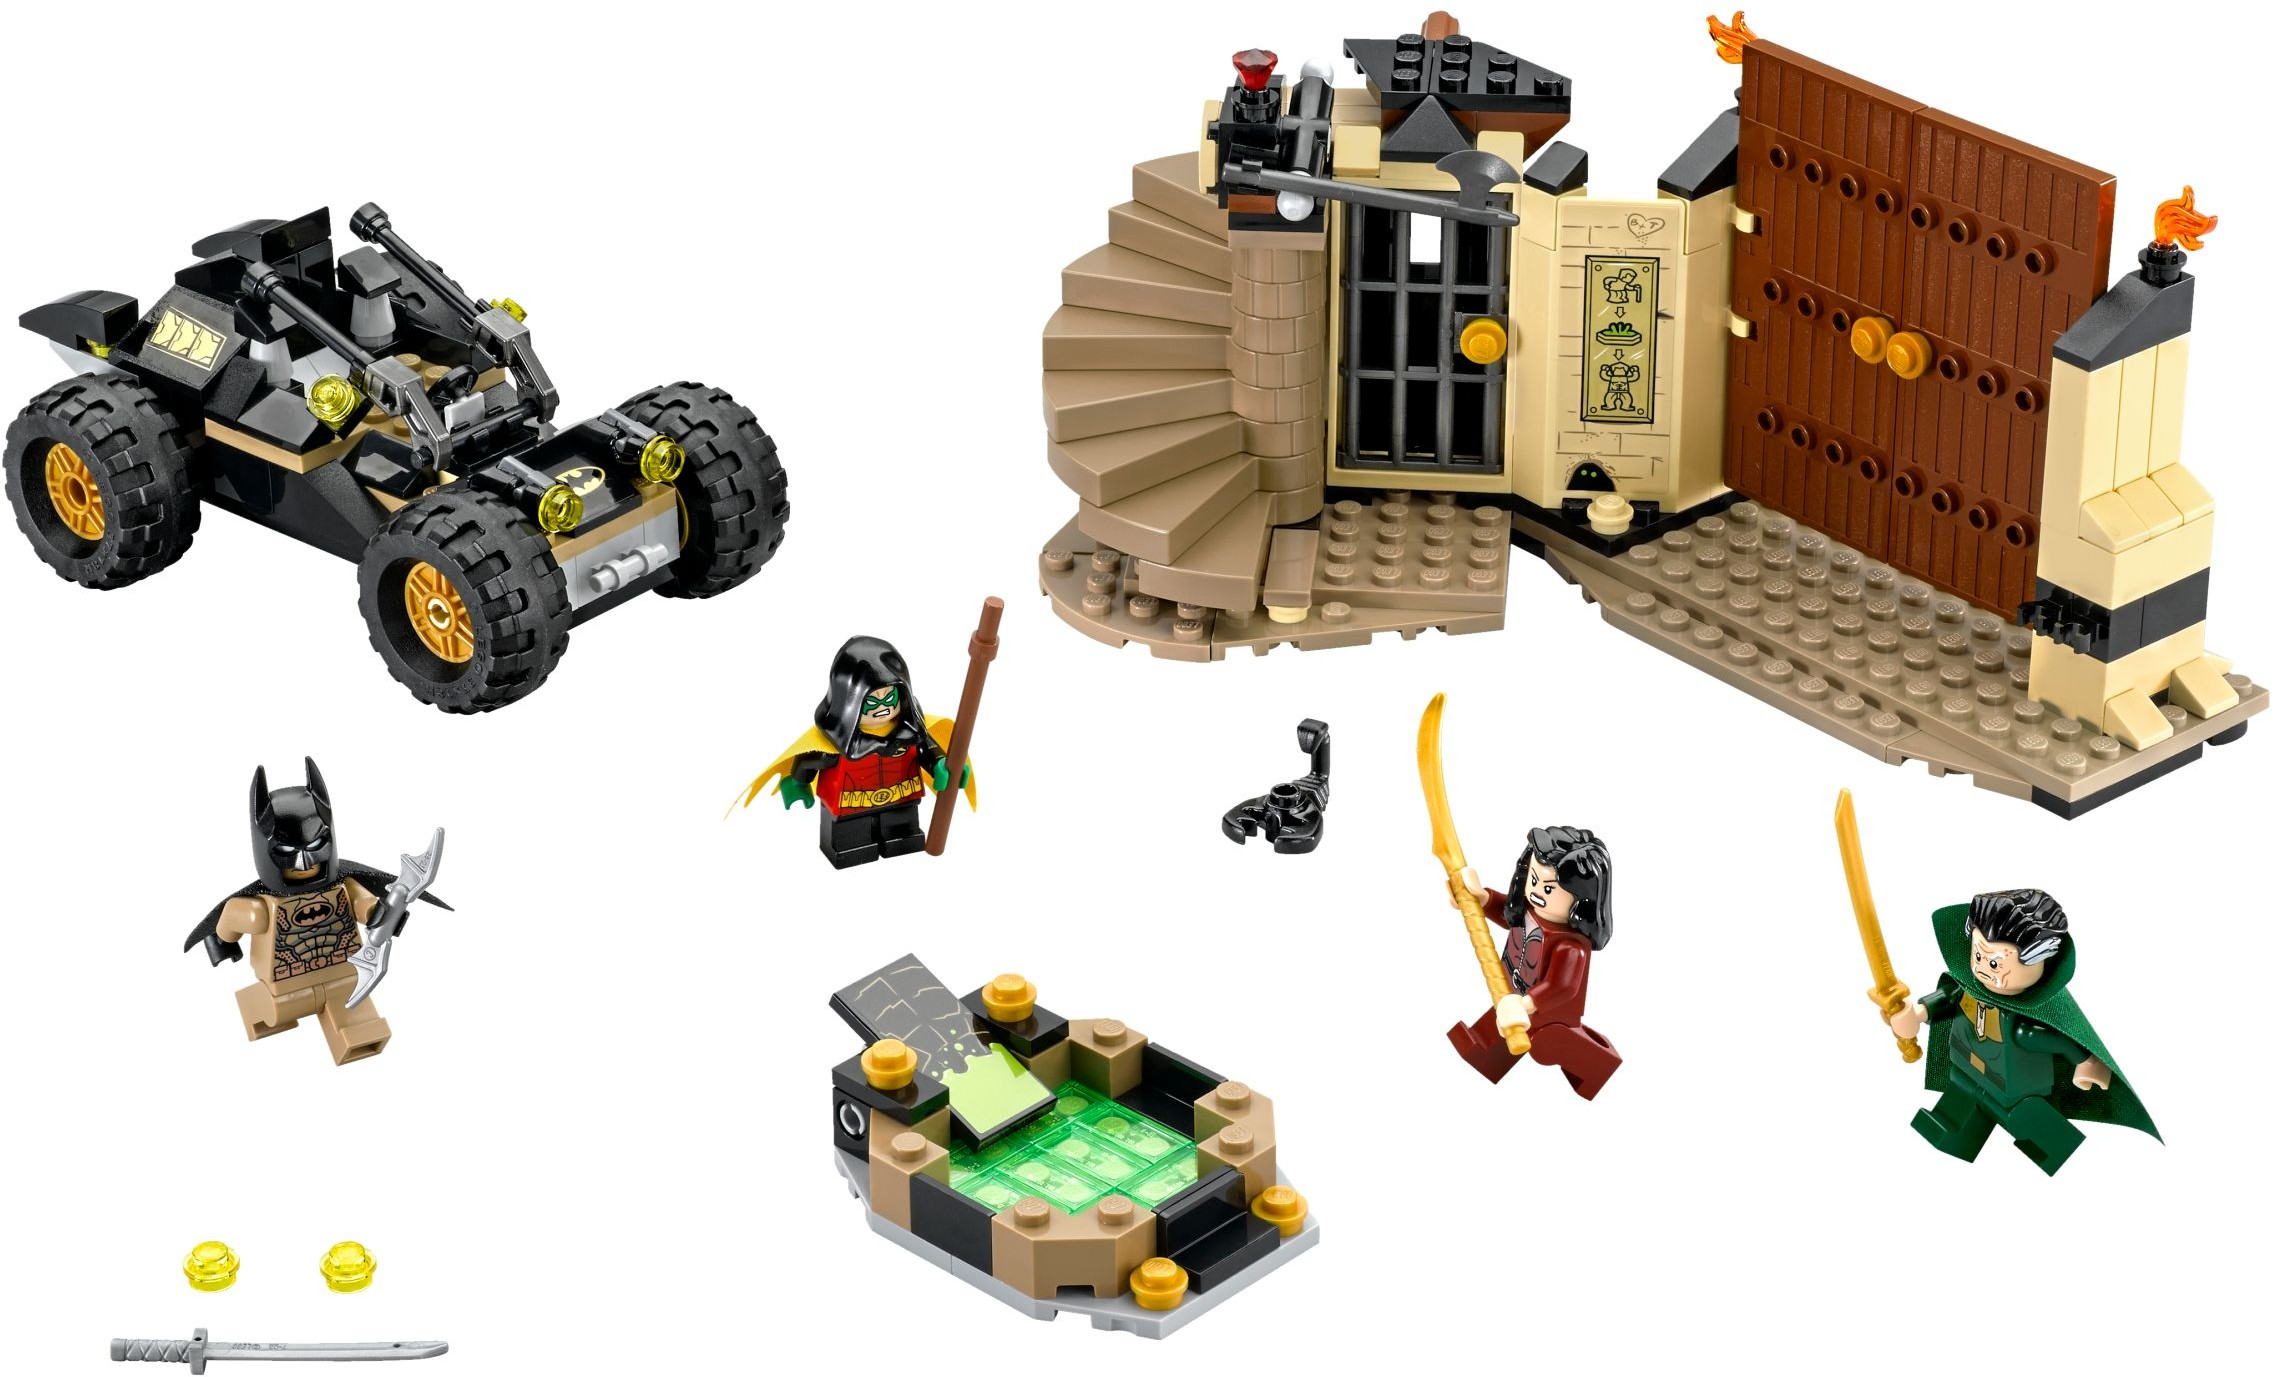 New Ninjago And Super Heroes Sets Revealed Brickset Lego Set 70596 Samurai X Cave Chaos We Still Dont Have An Image For 70326 The Black Knight Mech Or Mysterious 75143 But They Should Be Coming Soon